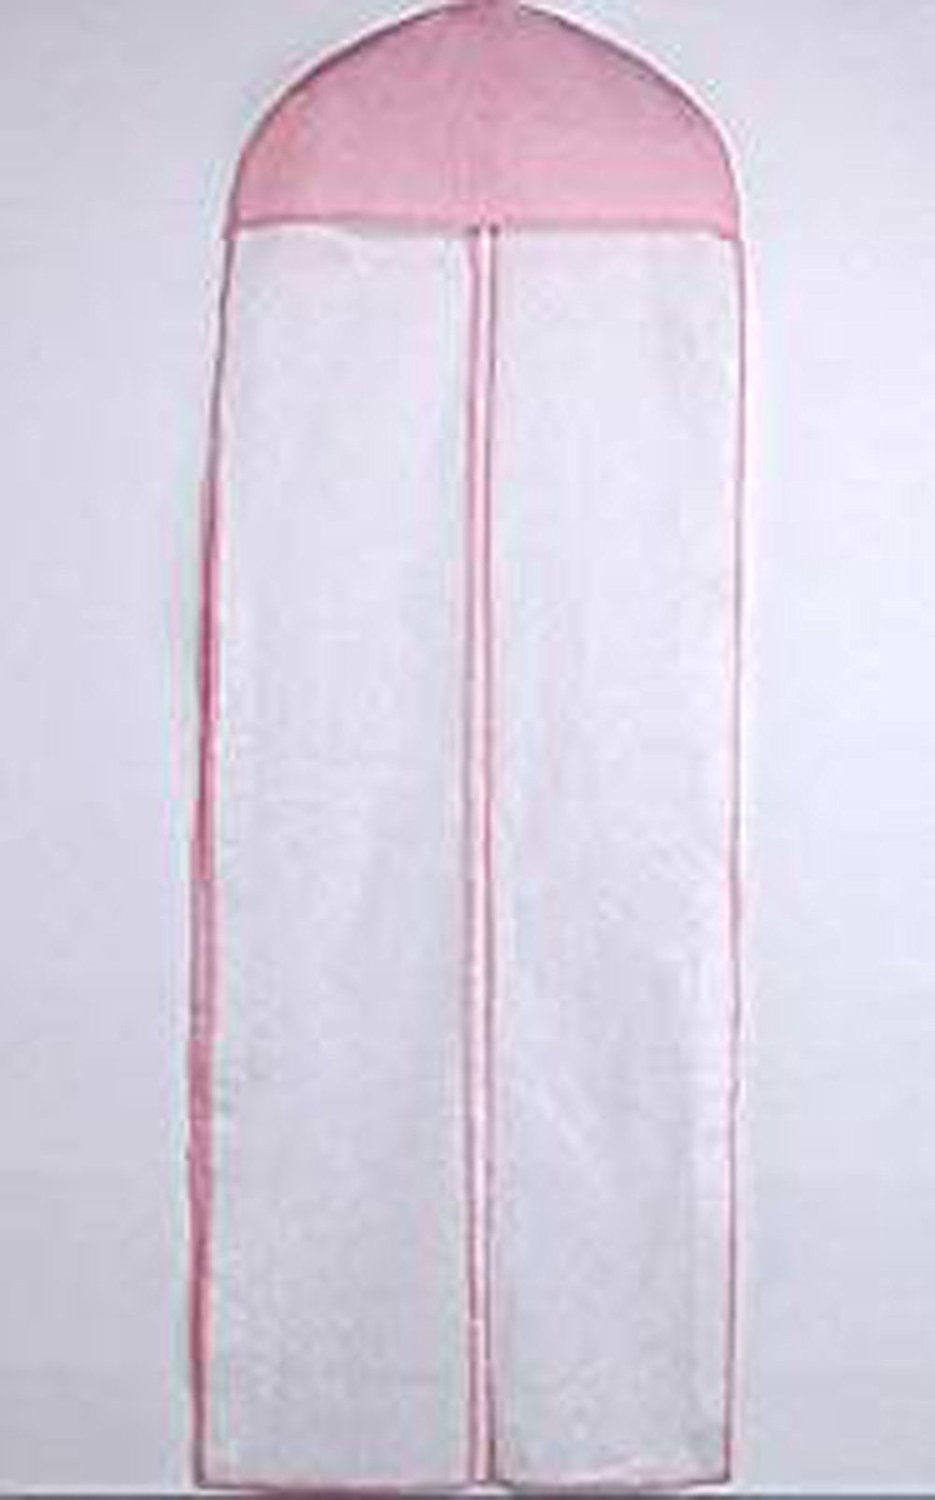 22f70f1bd5c3 Buy Wedding Dresses Dust Cover Pink Non-woven Fabric Storage Bag ...